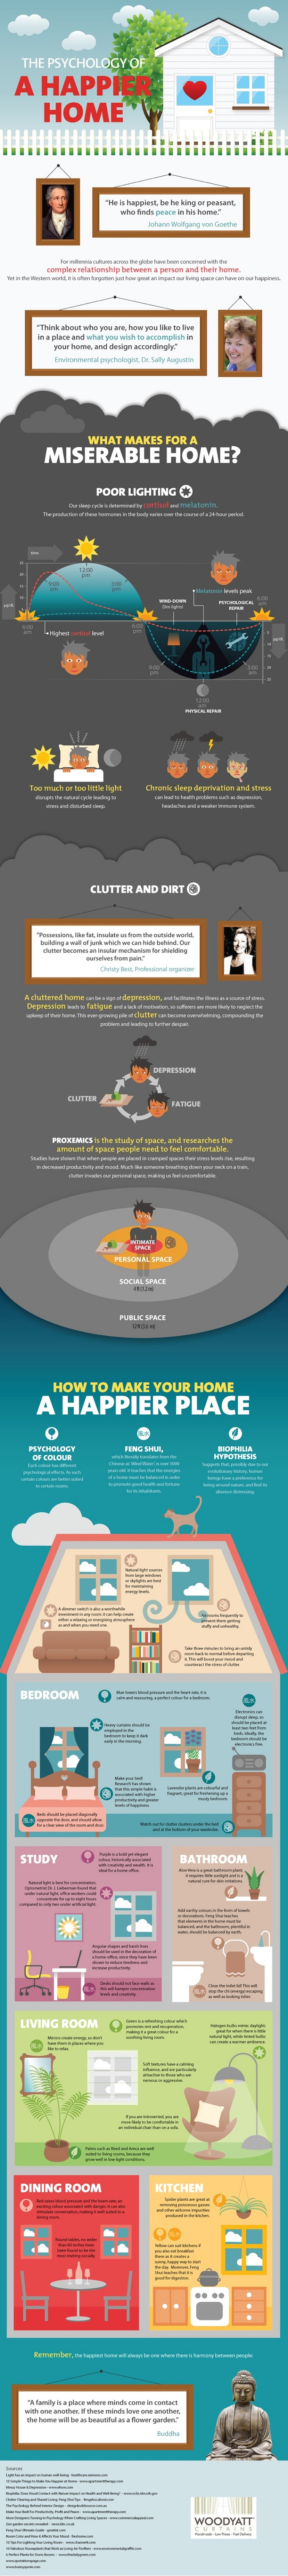 Psychology of a Happier Home Infographic